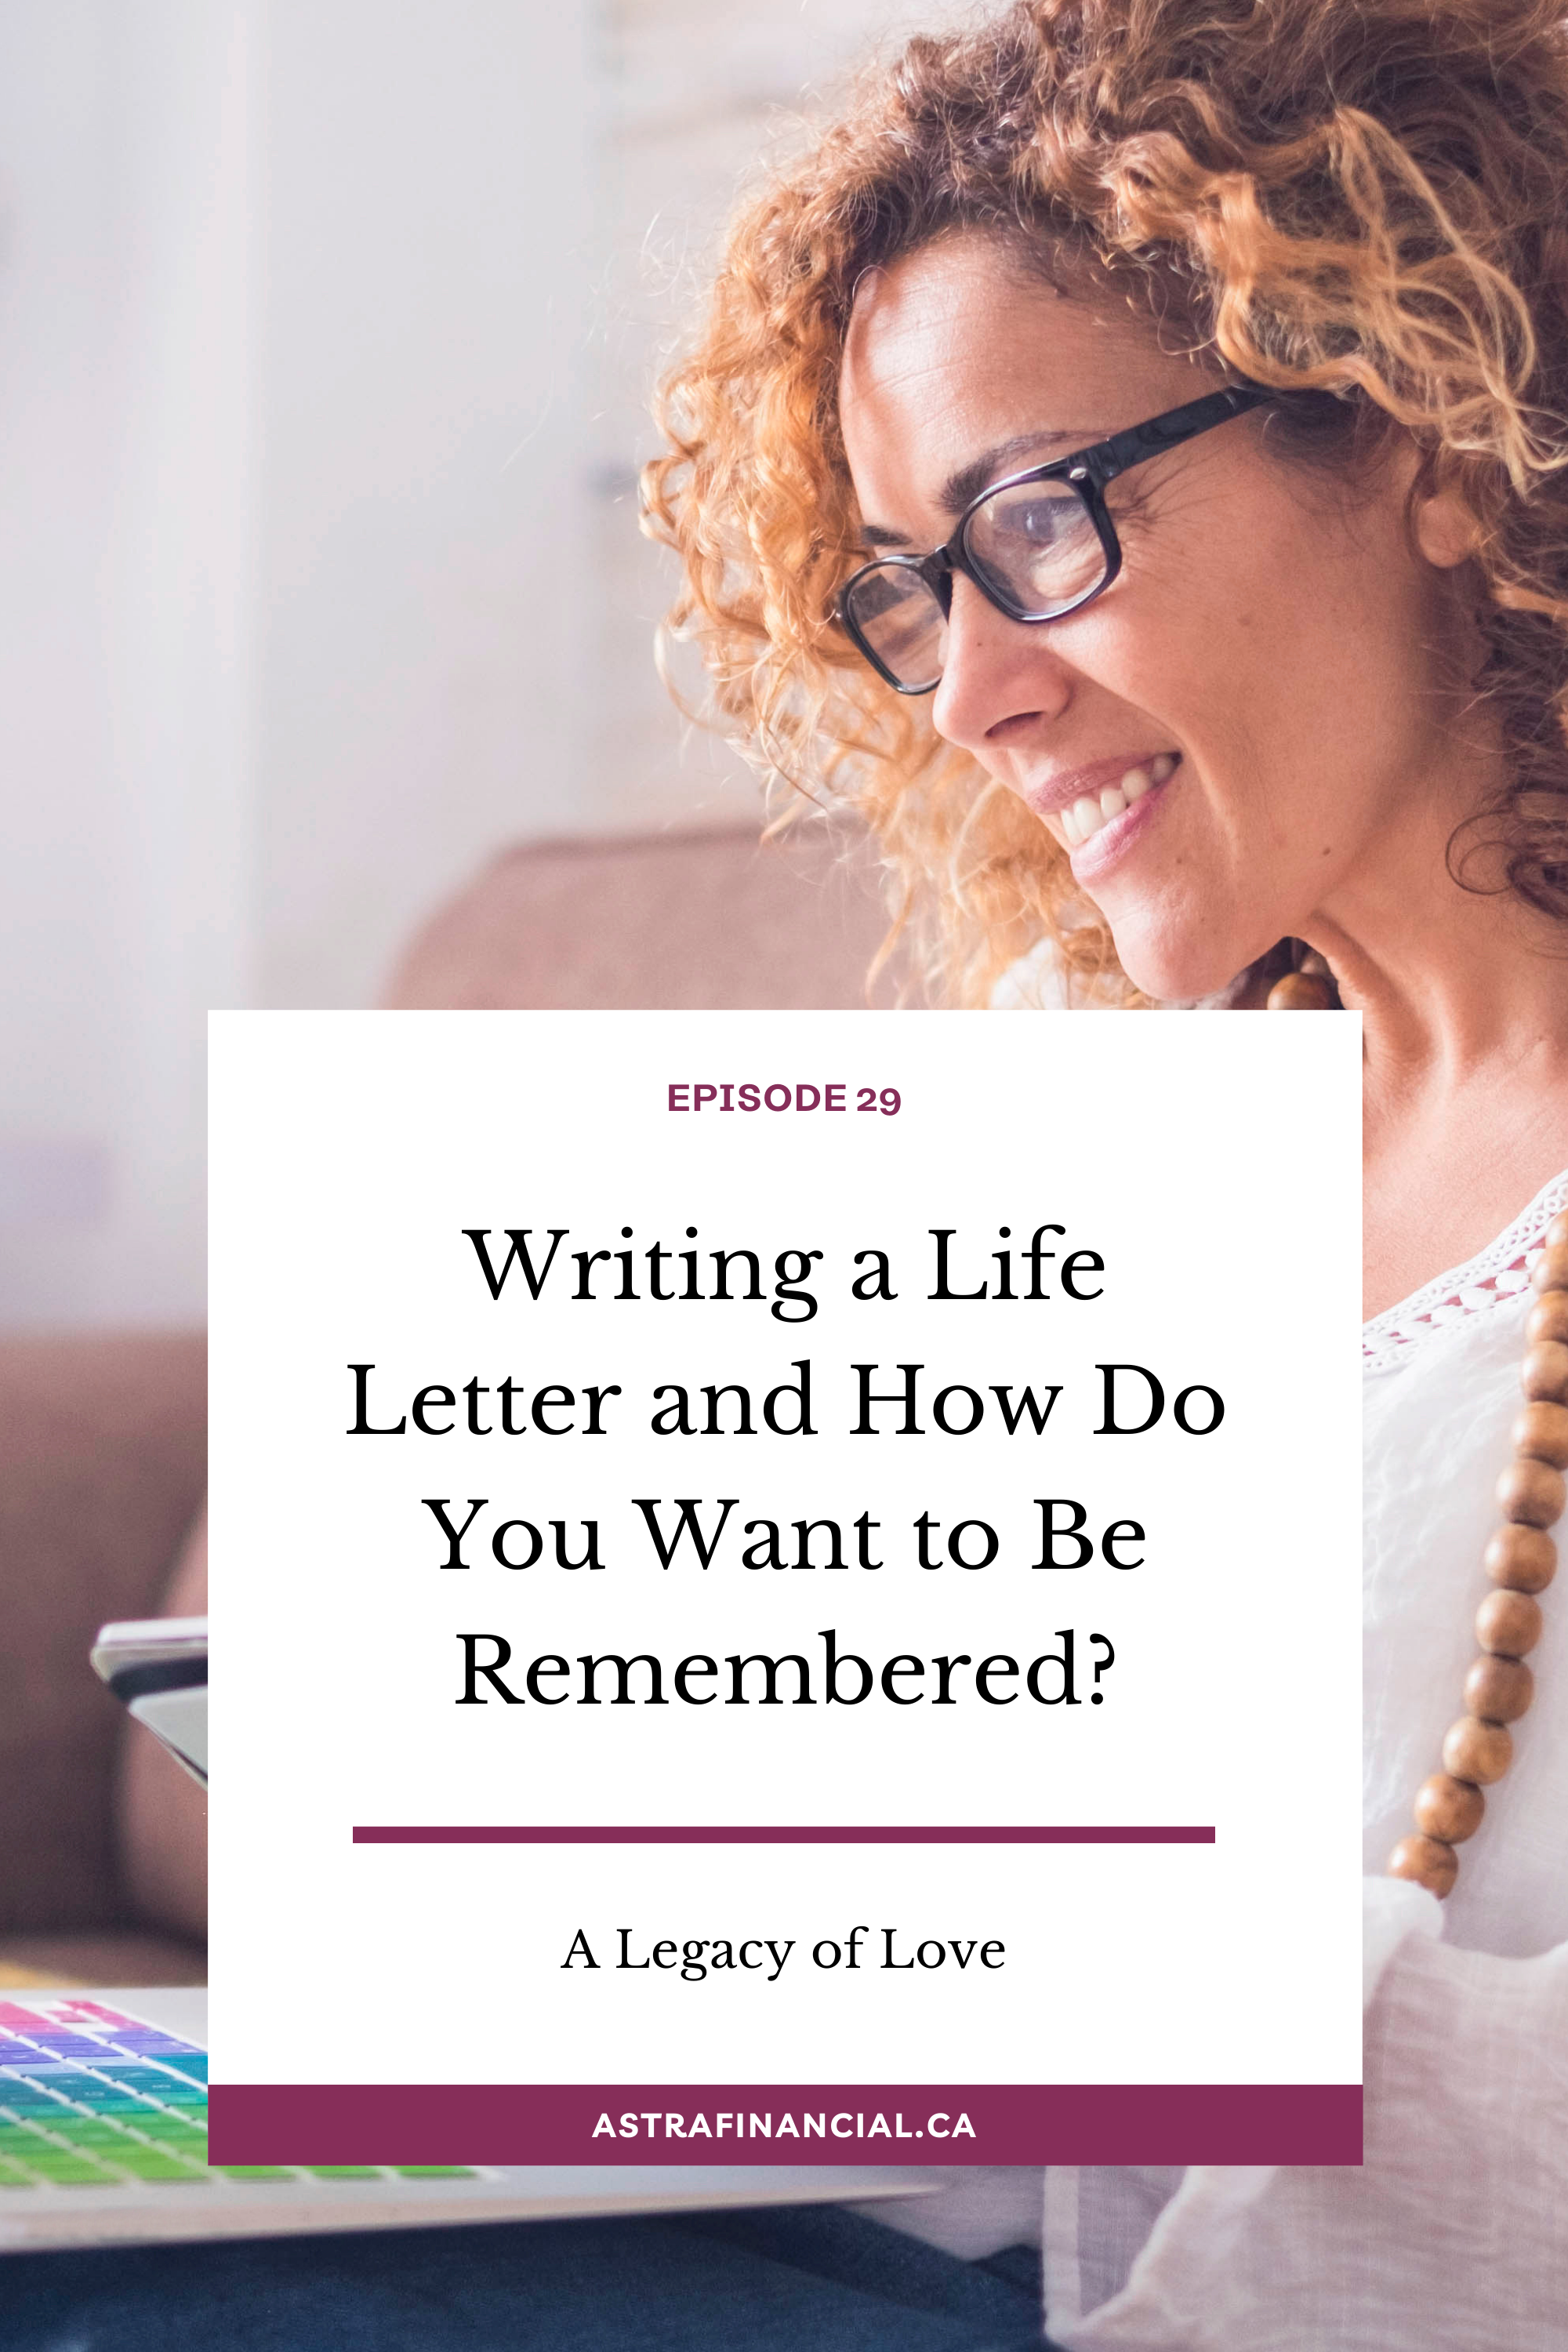 Episode 29 - Writing a Life Letter and How Do You Want to Be Remembered? By Astra Financial